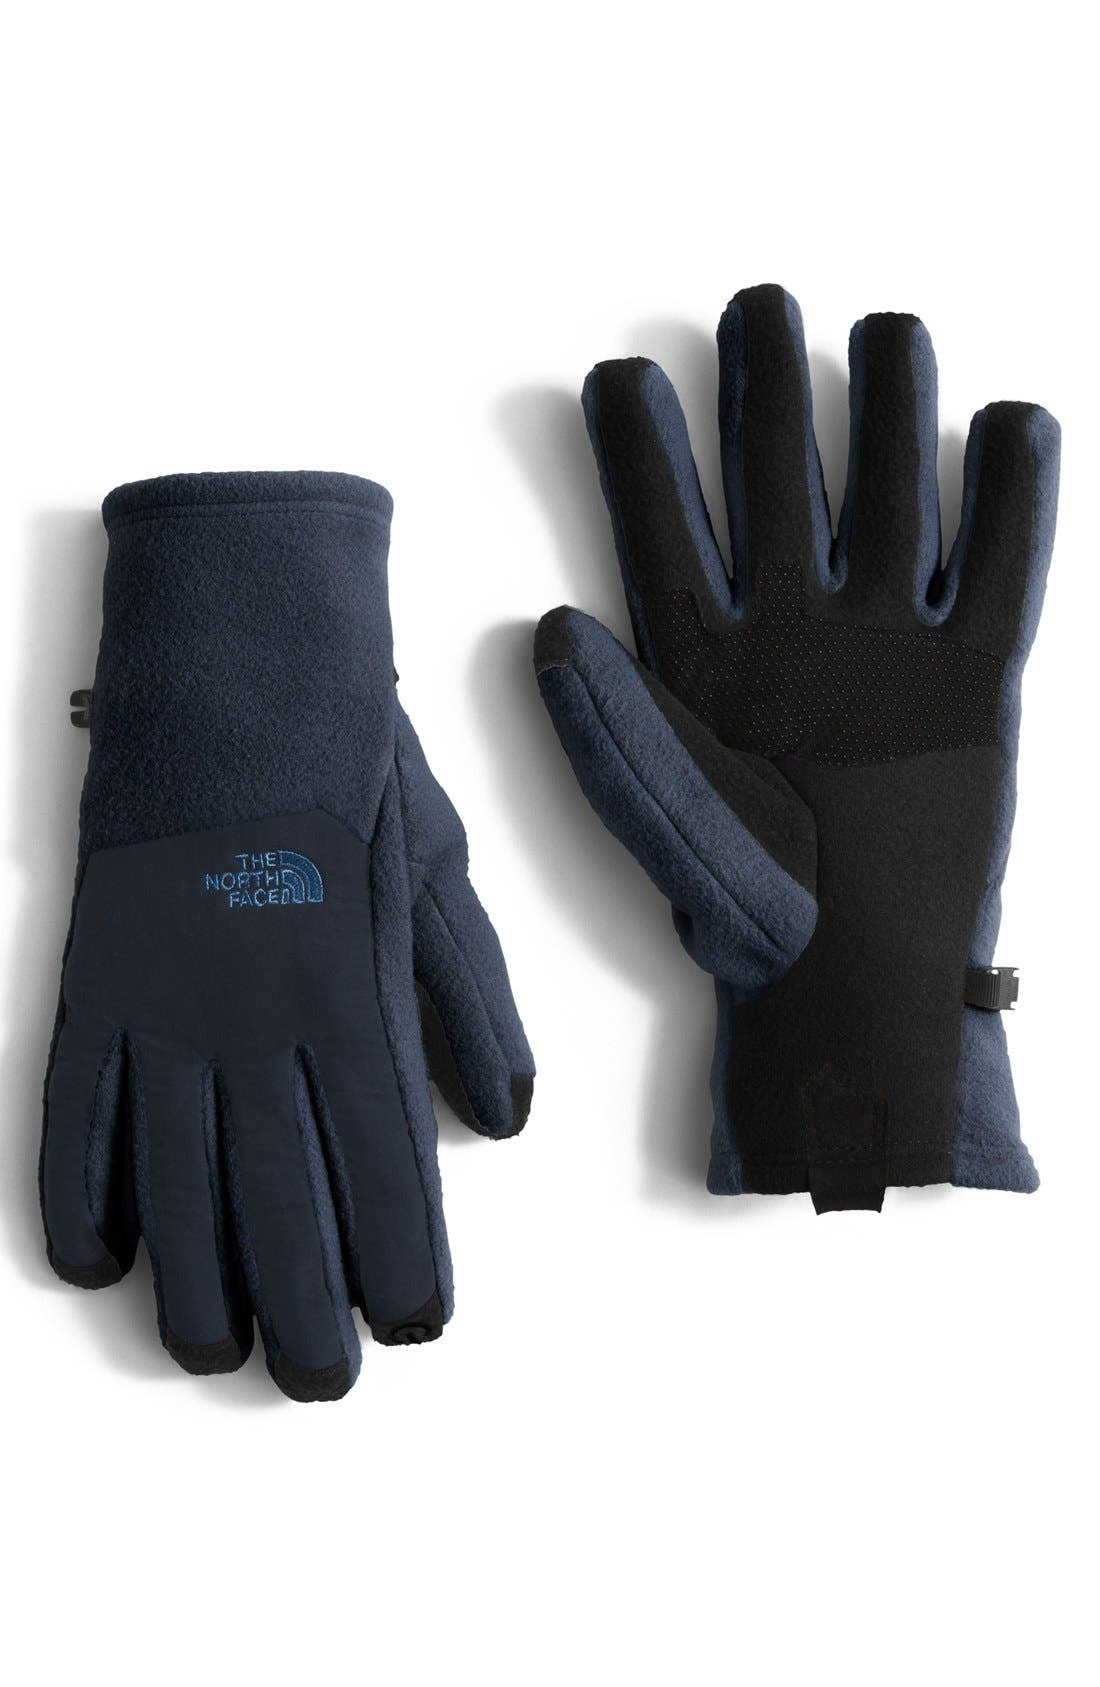 Alternate Image 1 Selected - The North Face 'Denali' E-Tip Gloves